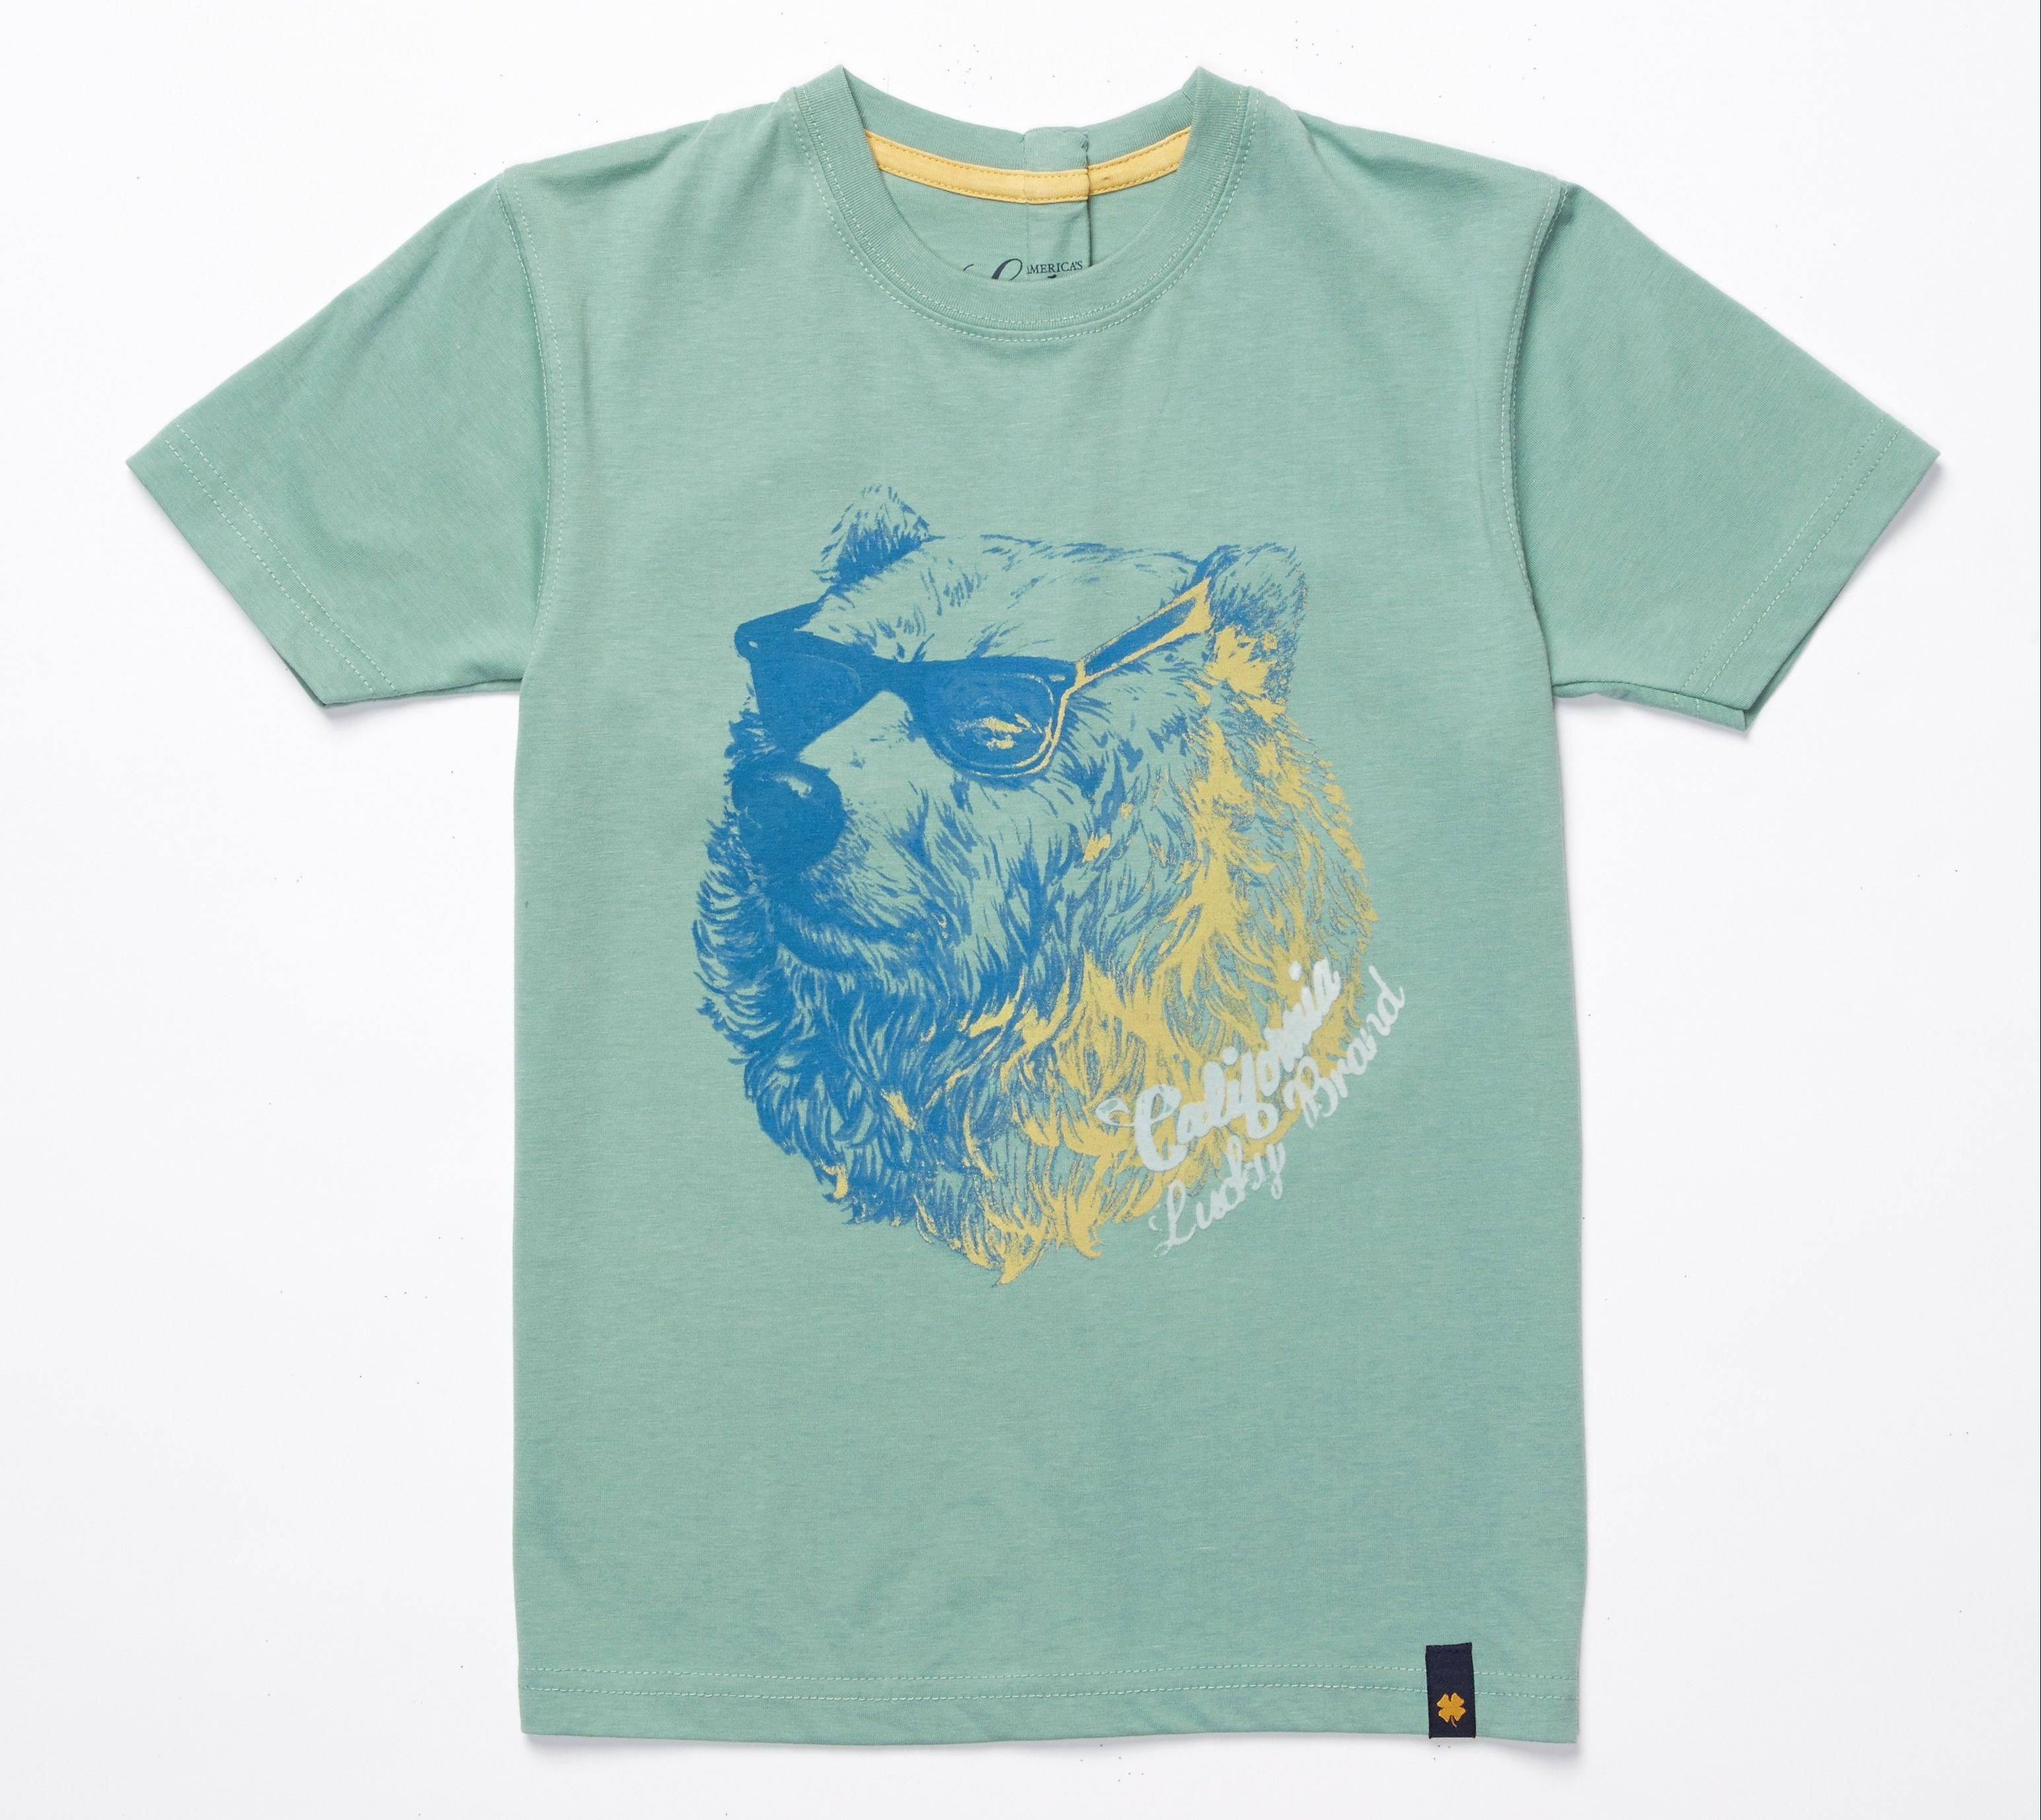 Dress your elementary-schooler up in a bold, graphic tee. $22 at Lucky Brand, $START_URL$luckybrand.com;http://www.luckybrand.com$STOP_URL$